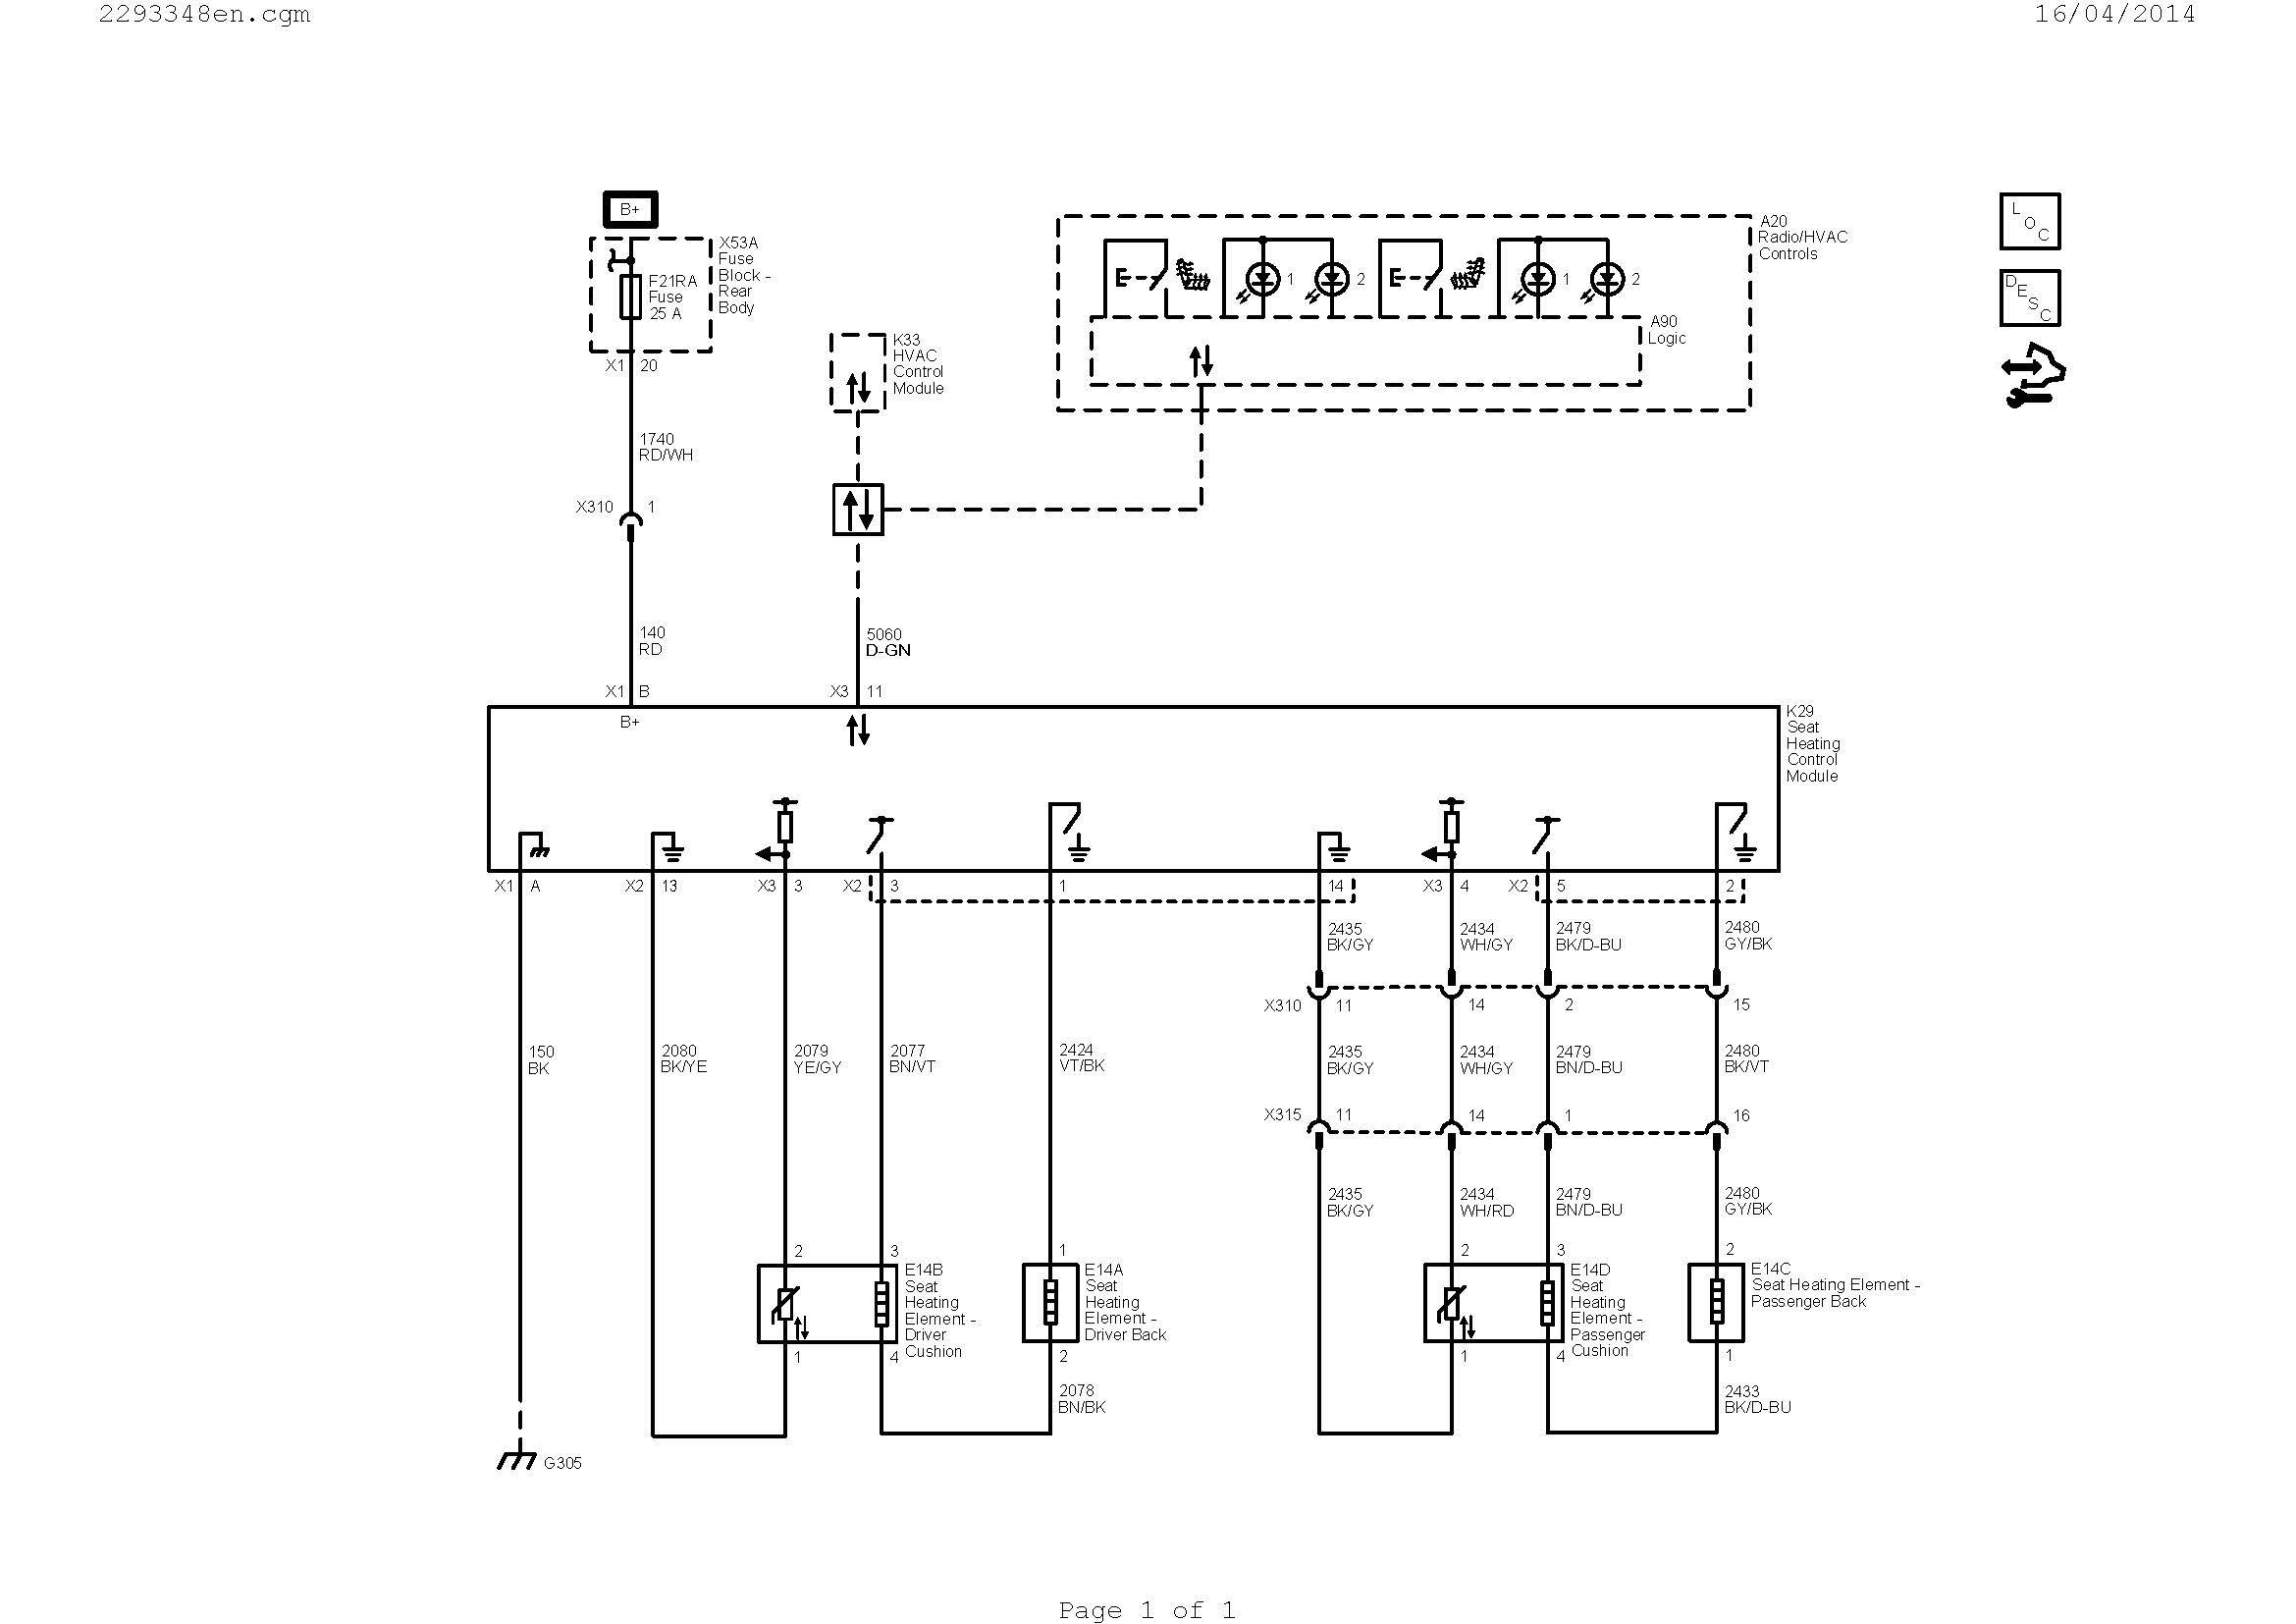 flow switch wiring diagram Download-flow switch wiring diagram Download on on on switch wiring diagram Collection Wiring Diagram For DOWNLOAD Wiring Diagram Sheets Detail Name flow switch 14-q